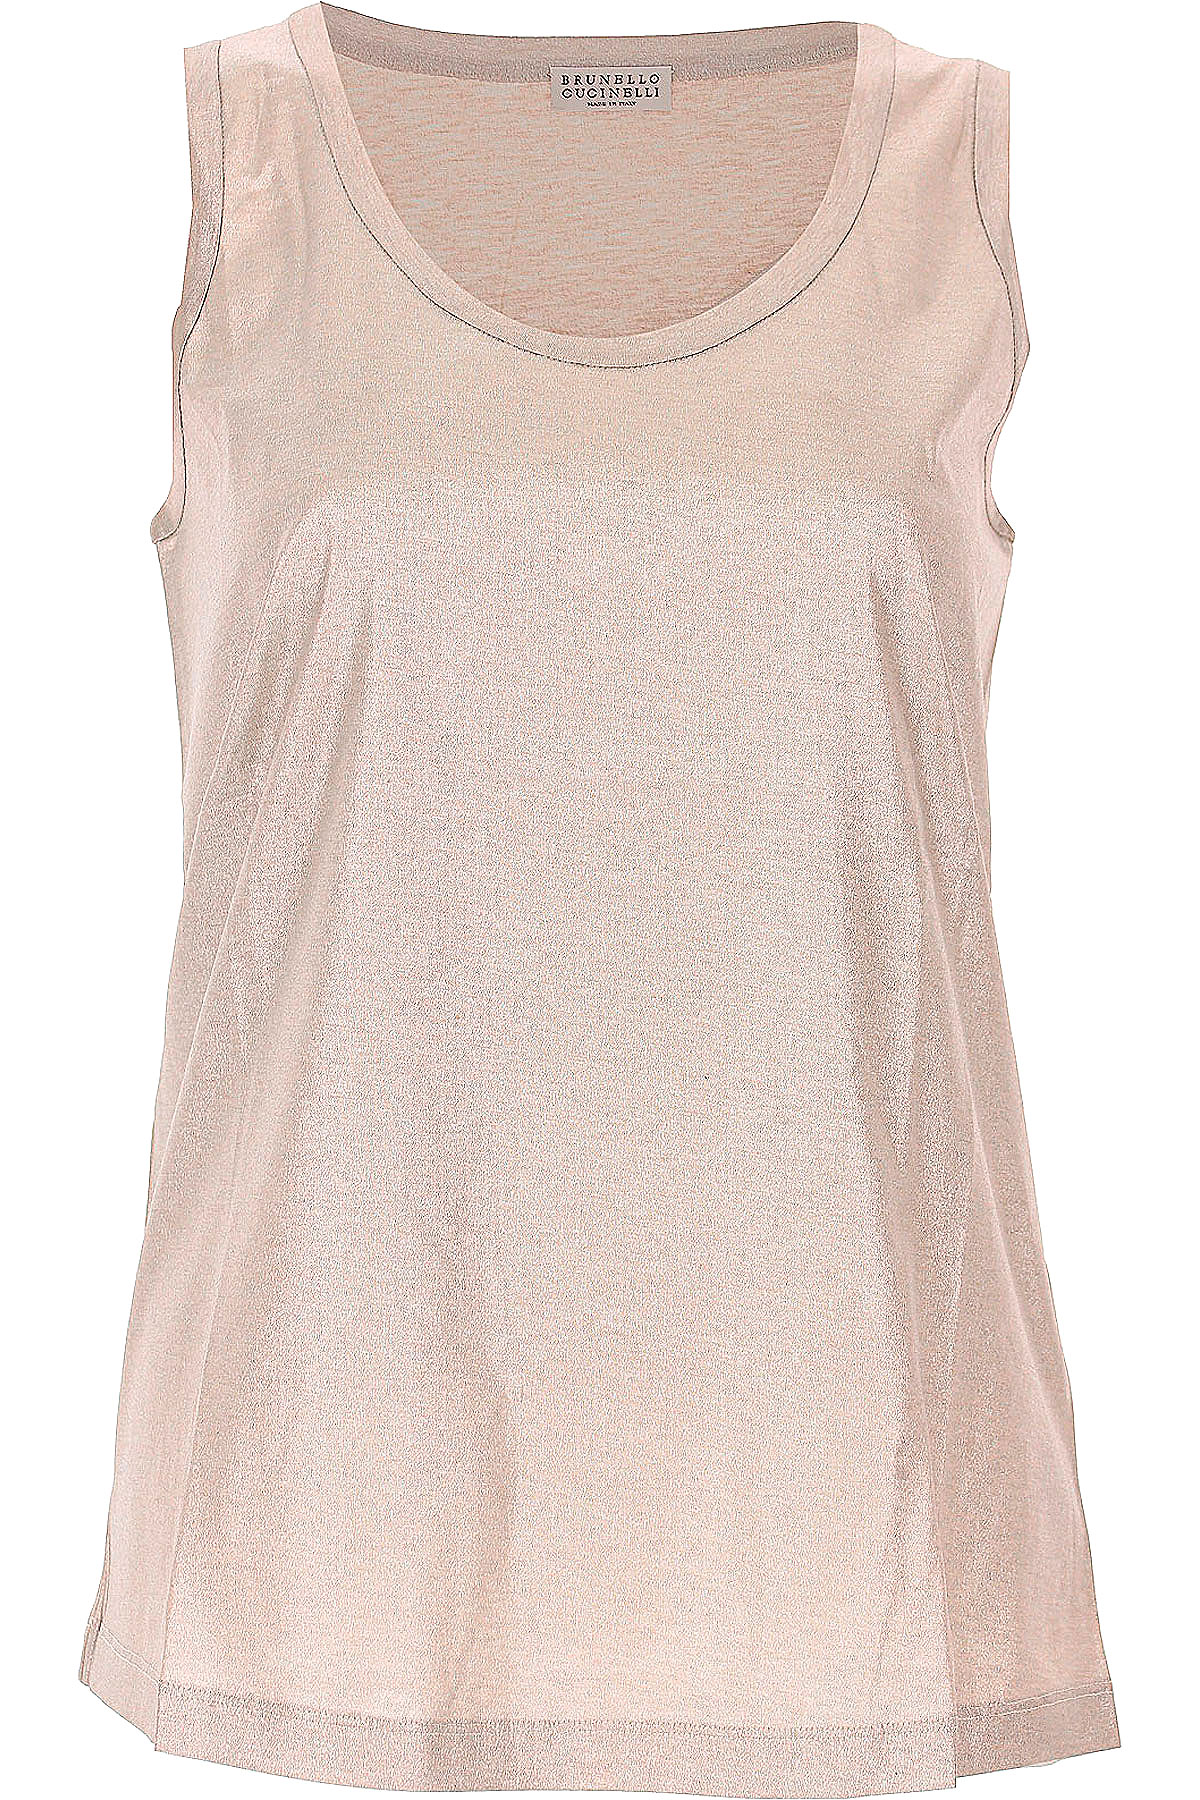 Image of Brunello Cucinelli Tank Top for Women On Sale, Silver, Cotton, 2017, 4 6